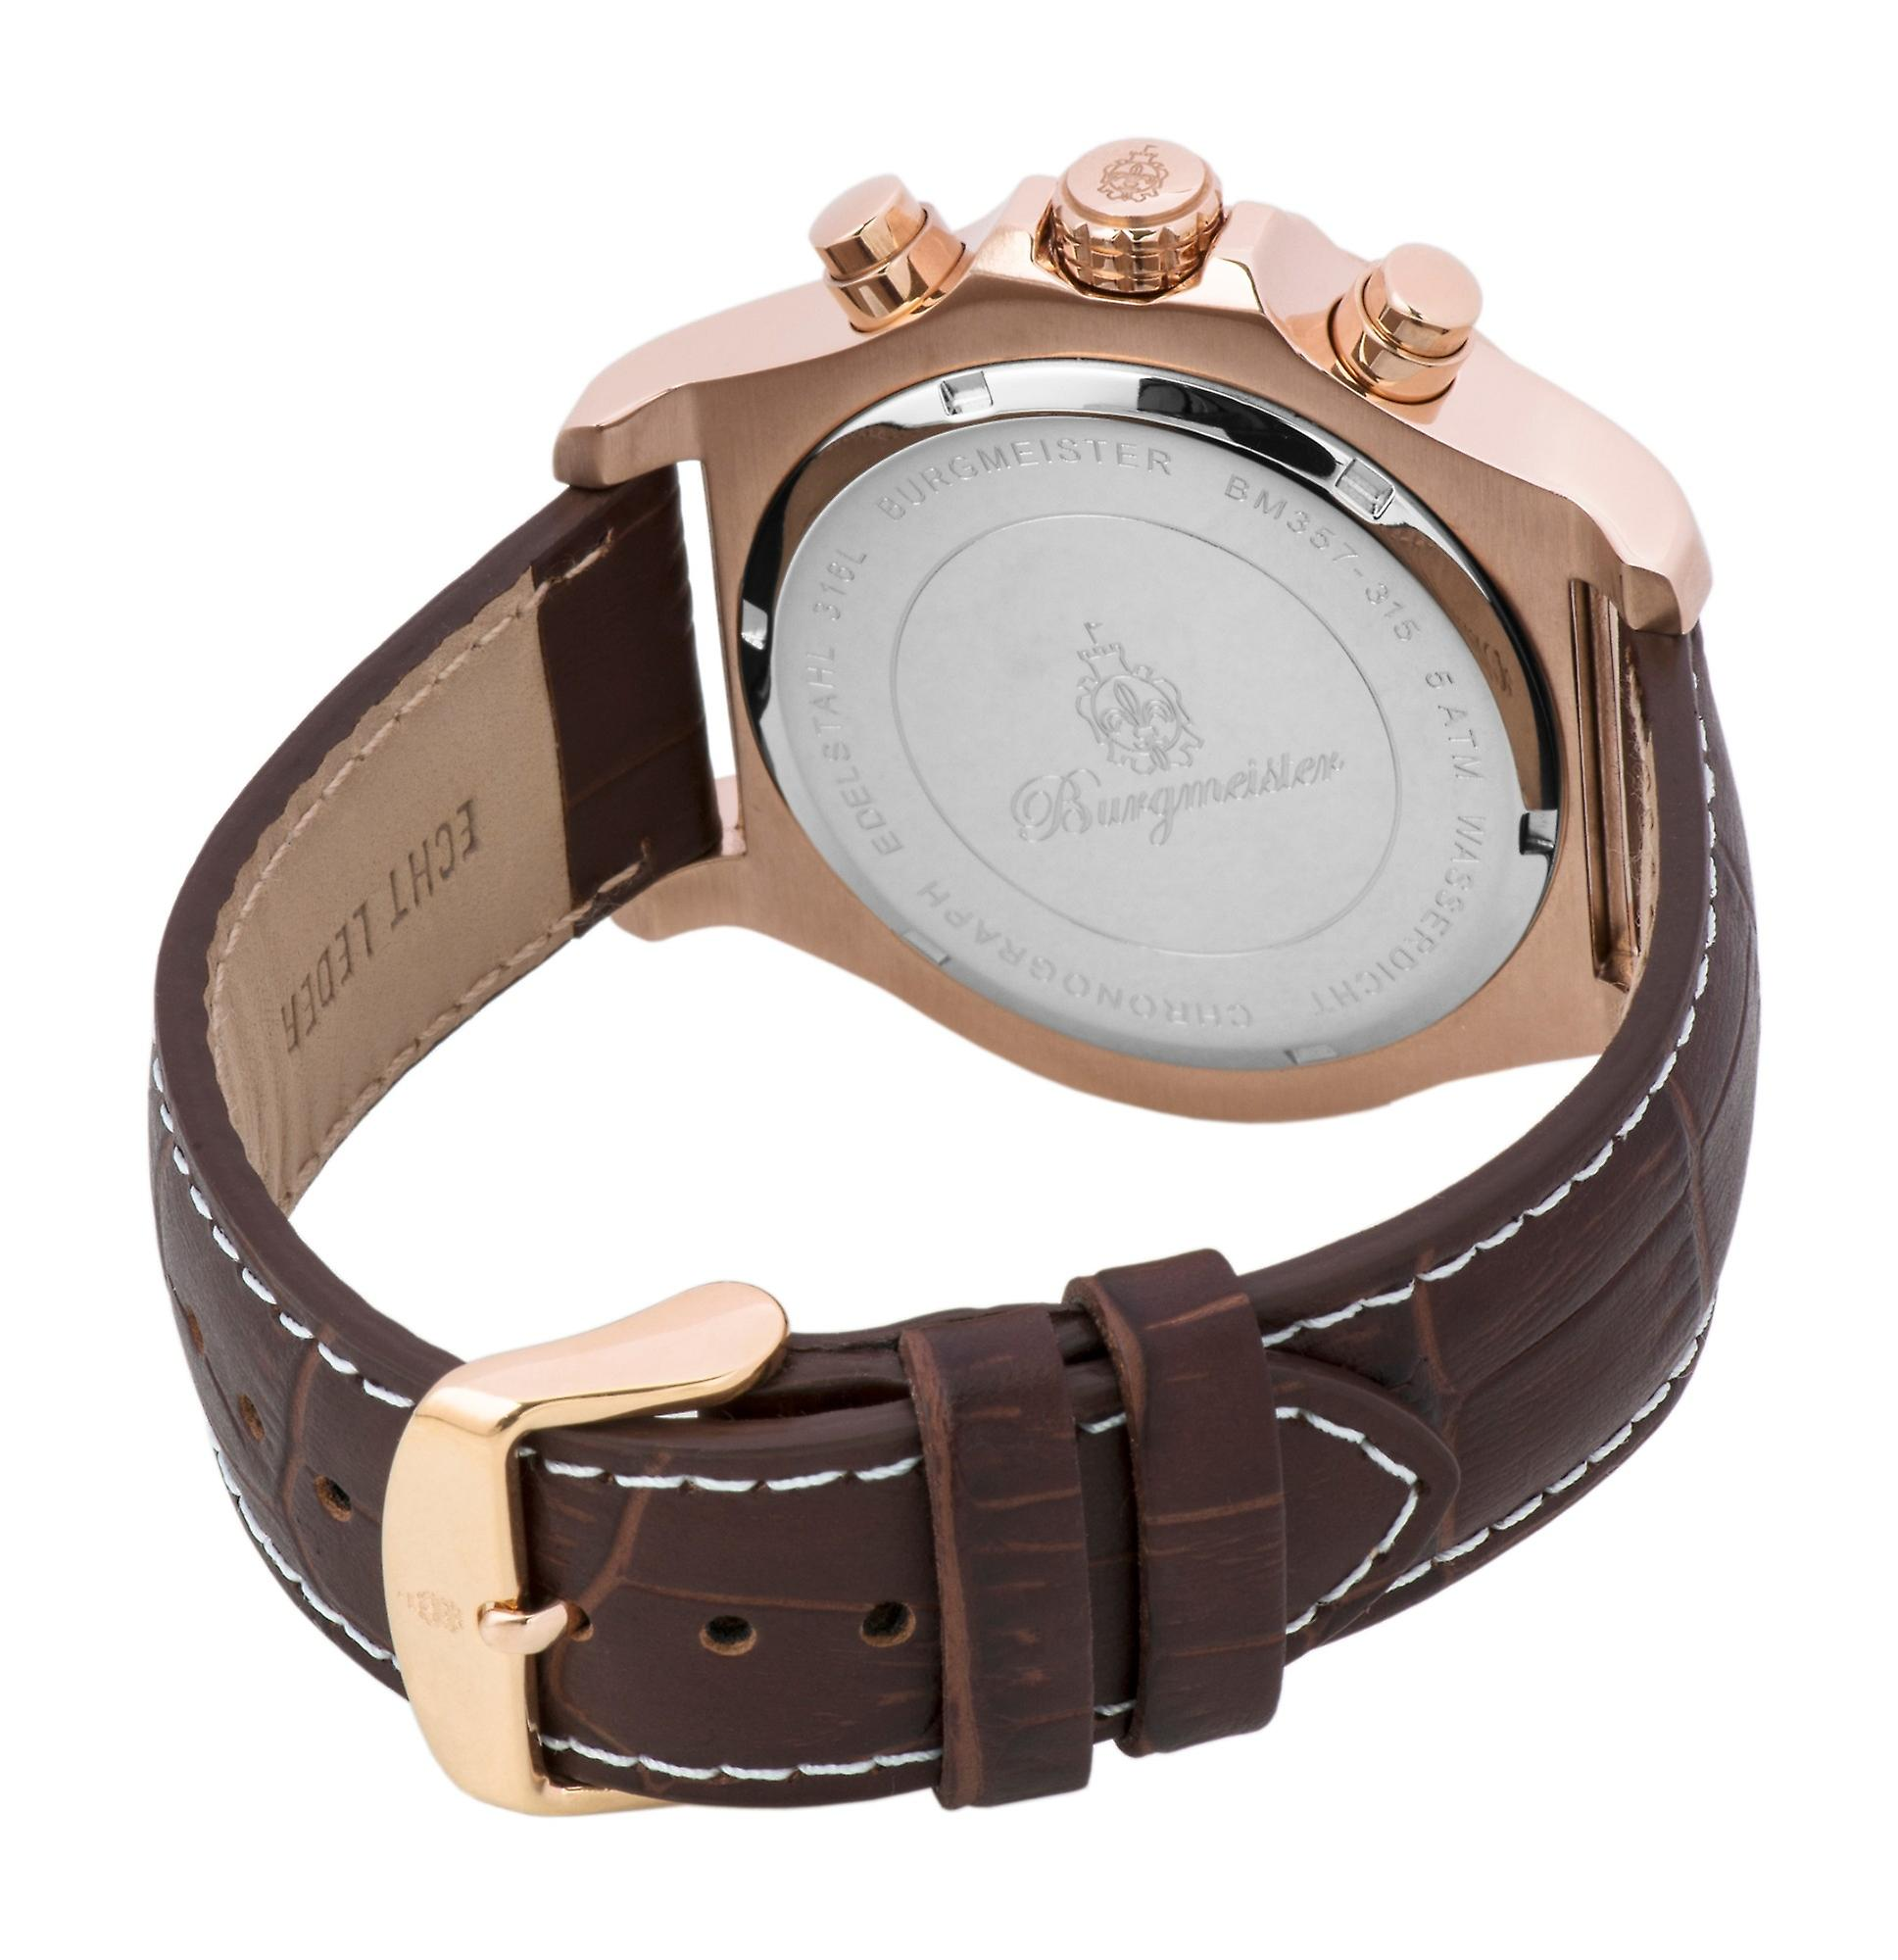 Burgmeister BM357-315 Meyrin, Gents watch, Analogue display, Chronograph with Citizen Movement - Water resistant, Stylish leather strap, Classic men's watch